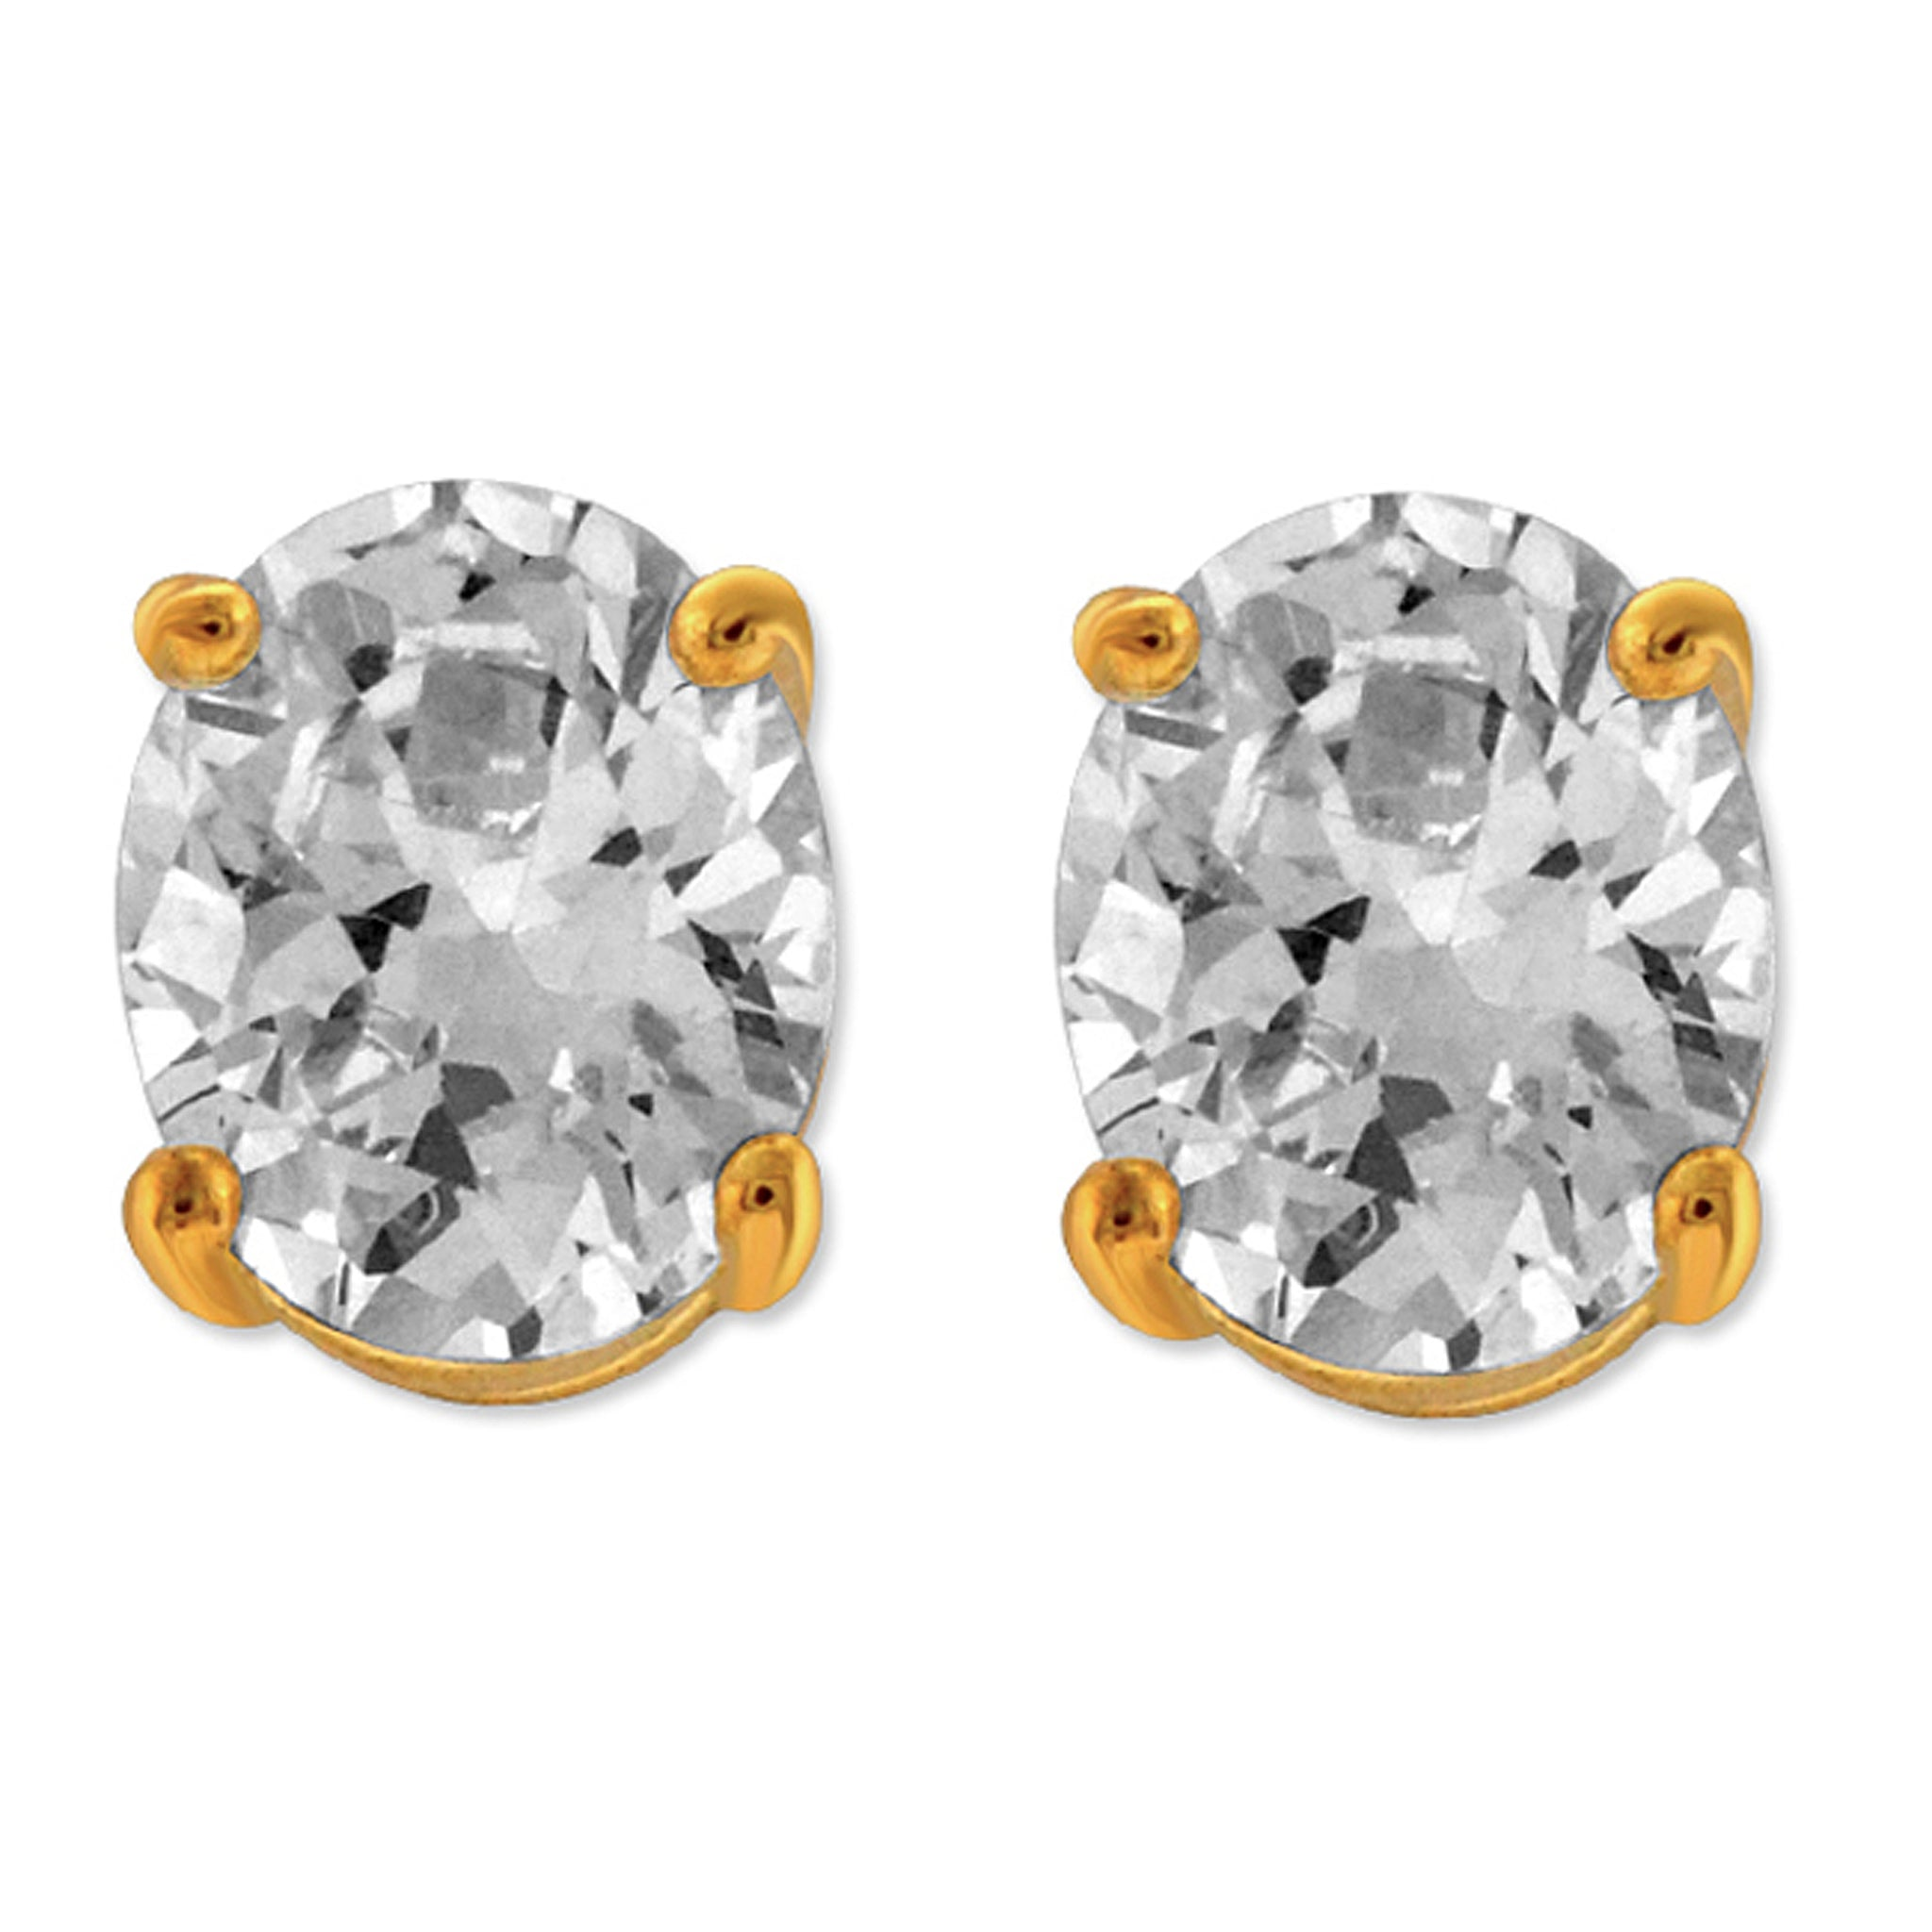 8.00 MM Oval Cubic Zirconia Solitaire Stud Earrings